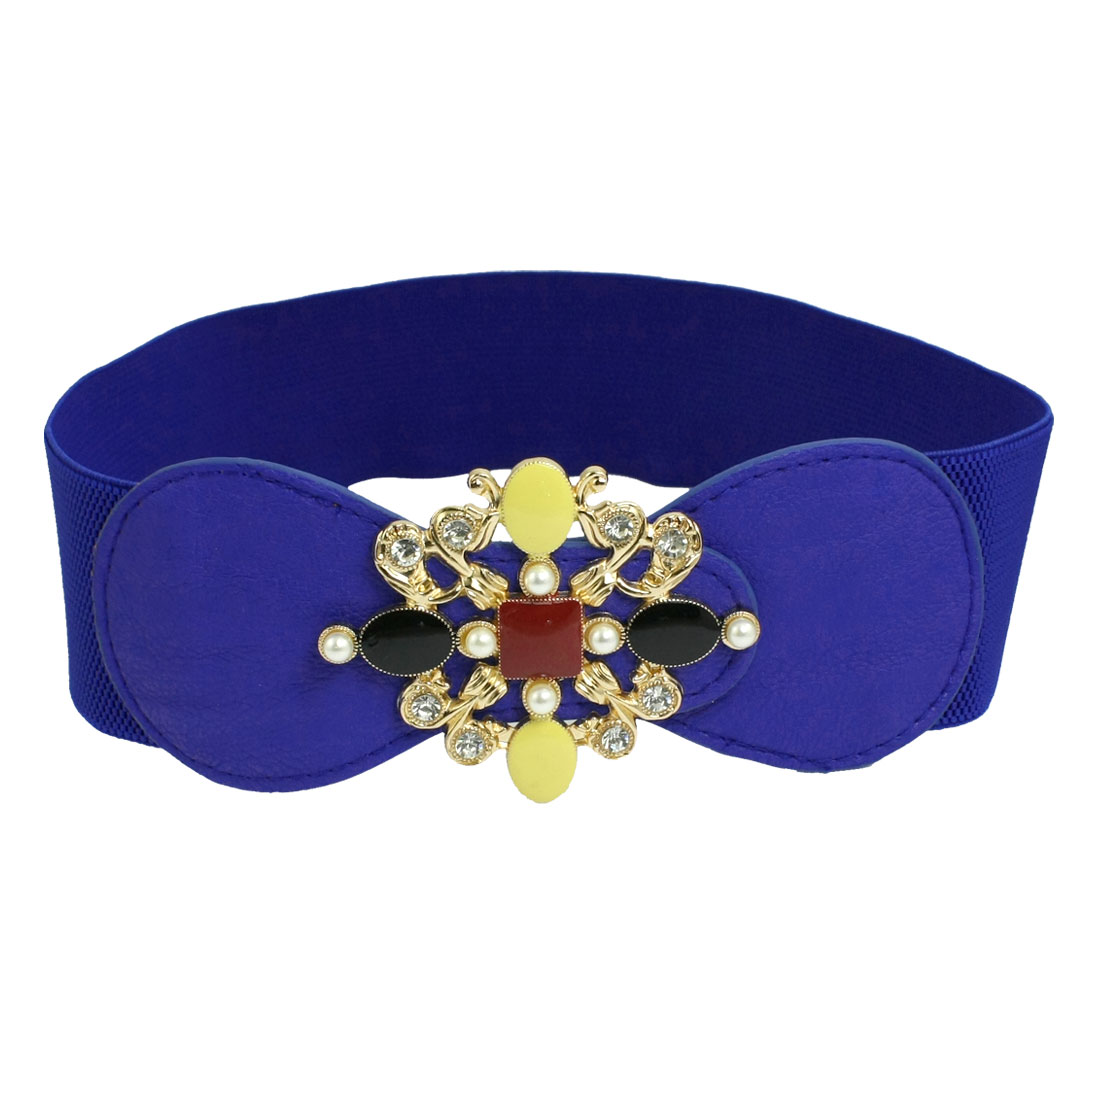 Blue Rhinestone Detail Faux Leather Decor Stretchy Waist Belt for Ladies